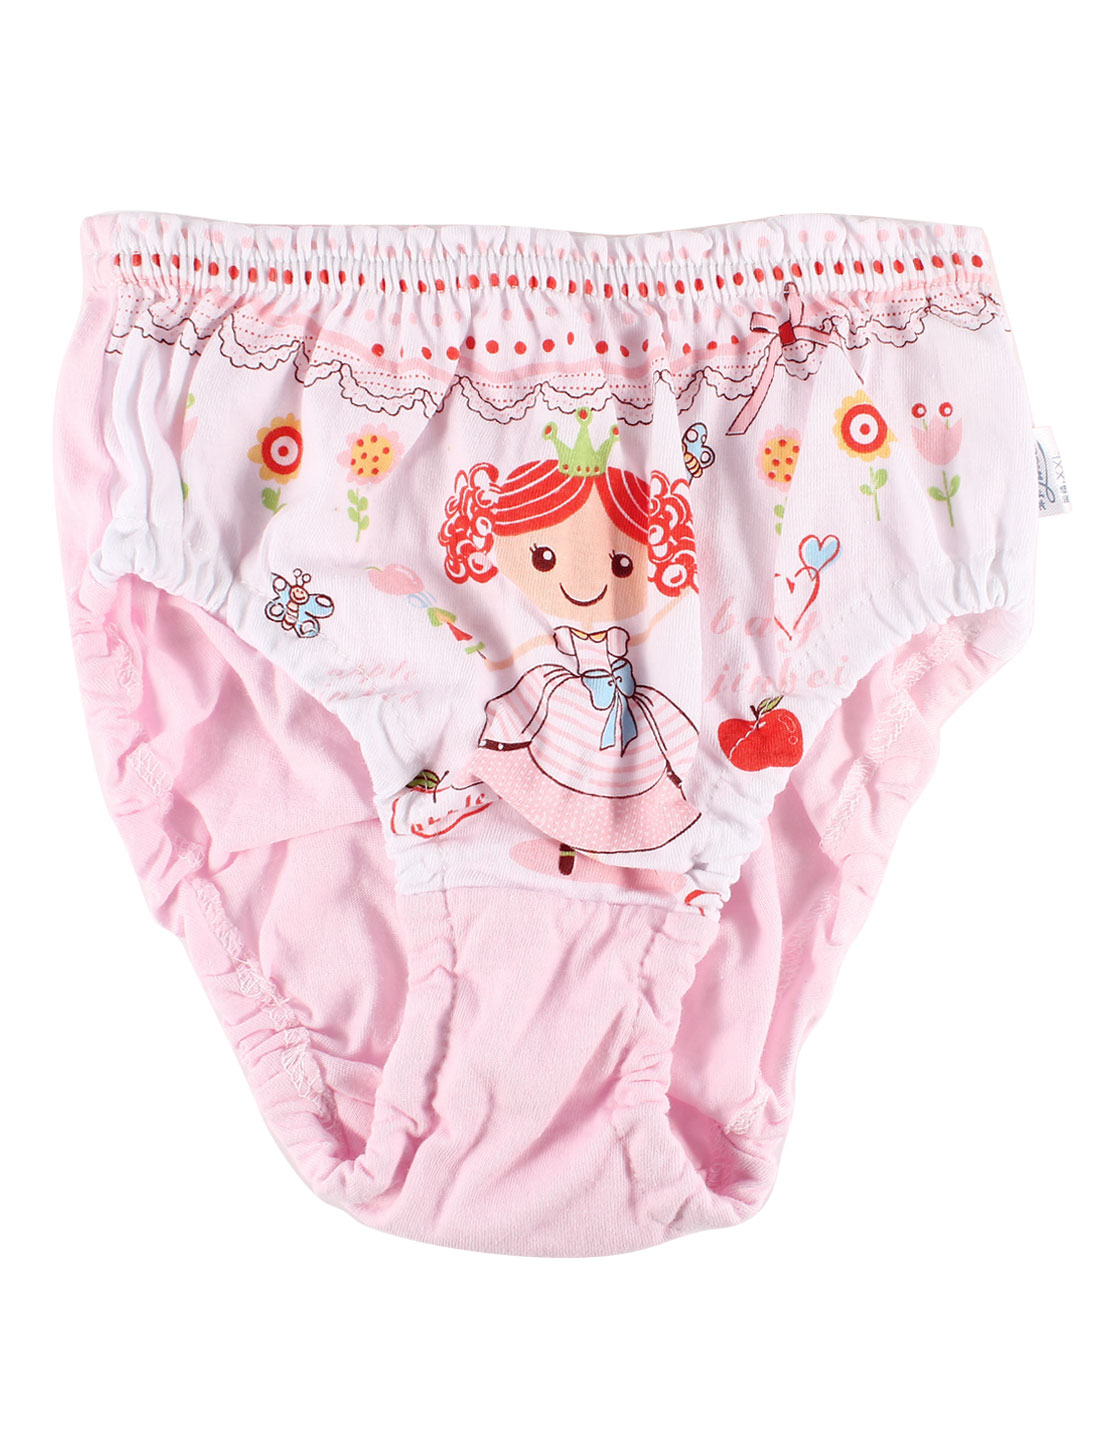 Floral Pattern Elastic Waist Lovely Briefs Pink for Girl US 2T